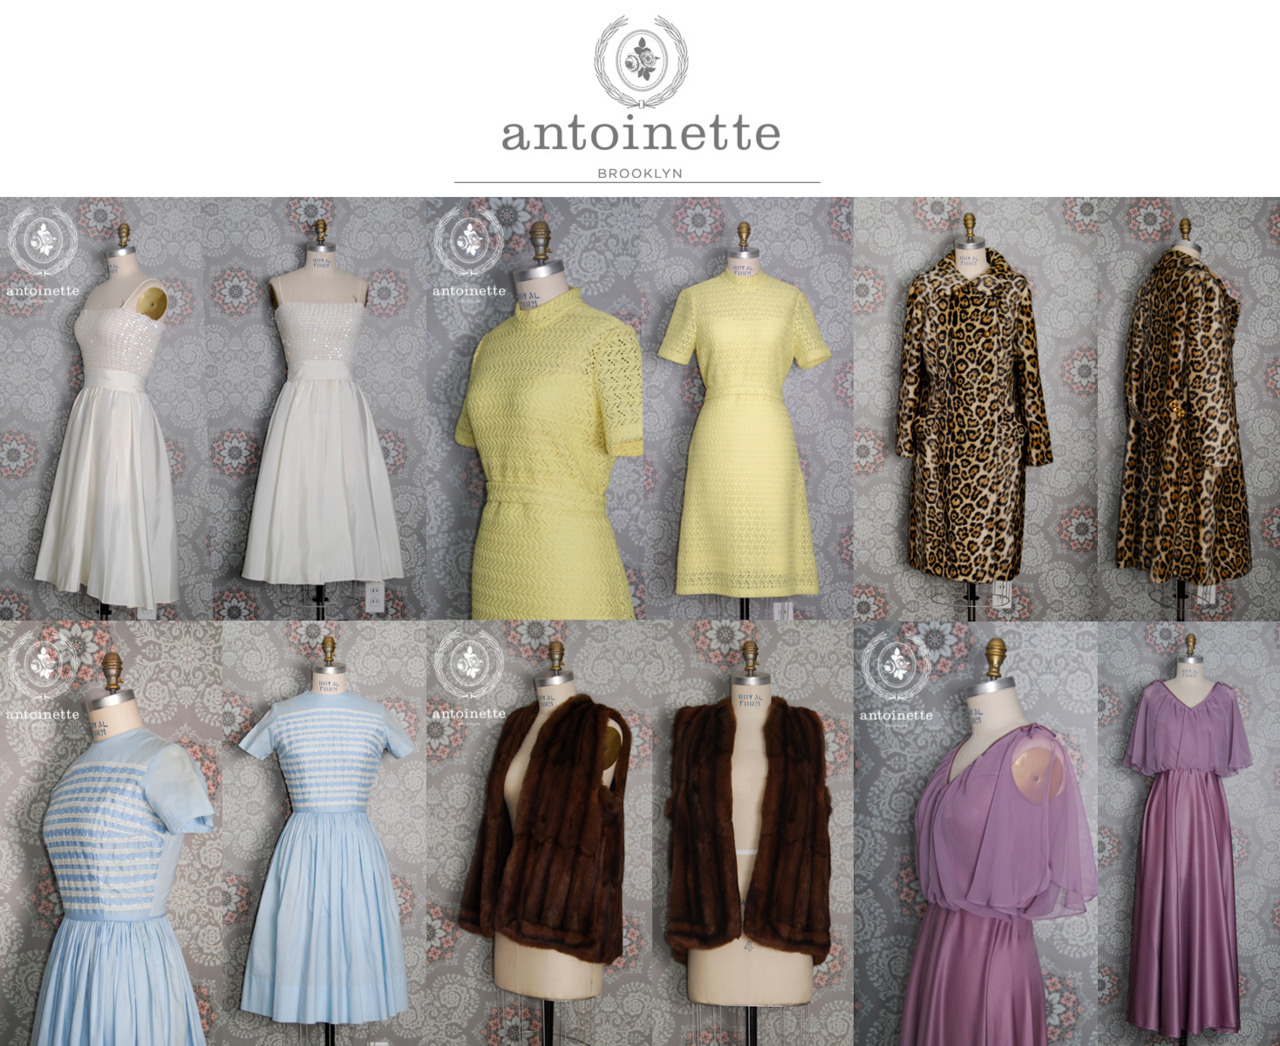 Less than 24 hrs to purchase antoinette pieces on Market Publique   Don't miss your chance to buy some sweet Vintage straight out of Williamsburg Brooklyn!